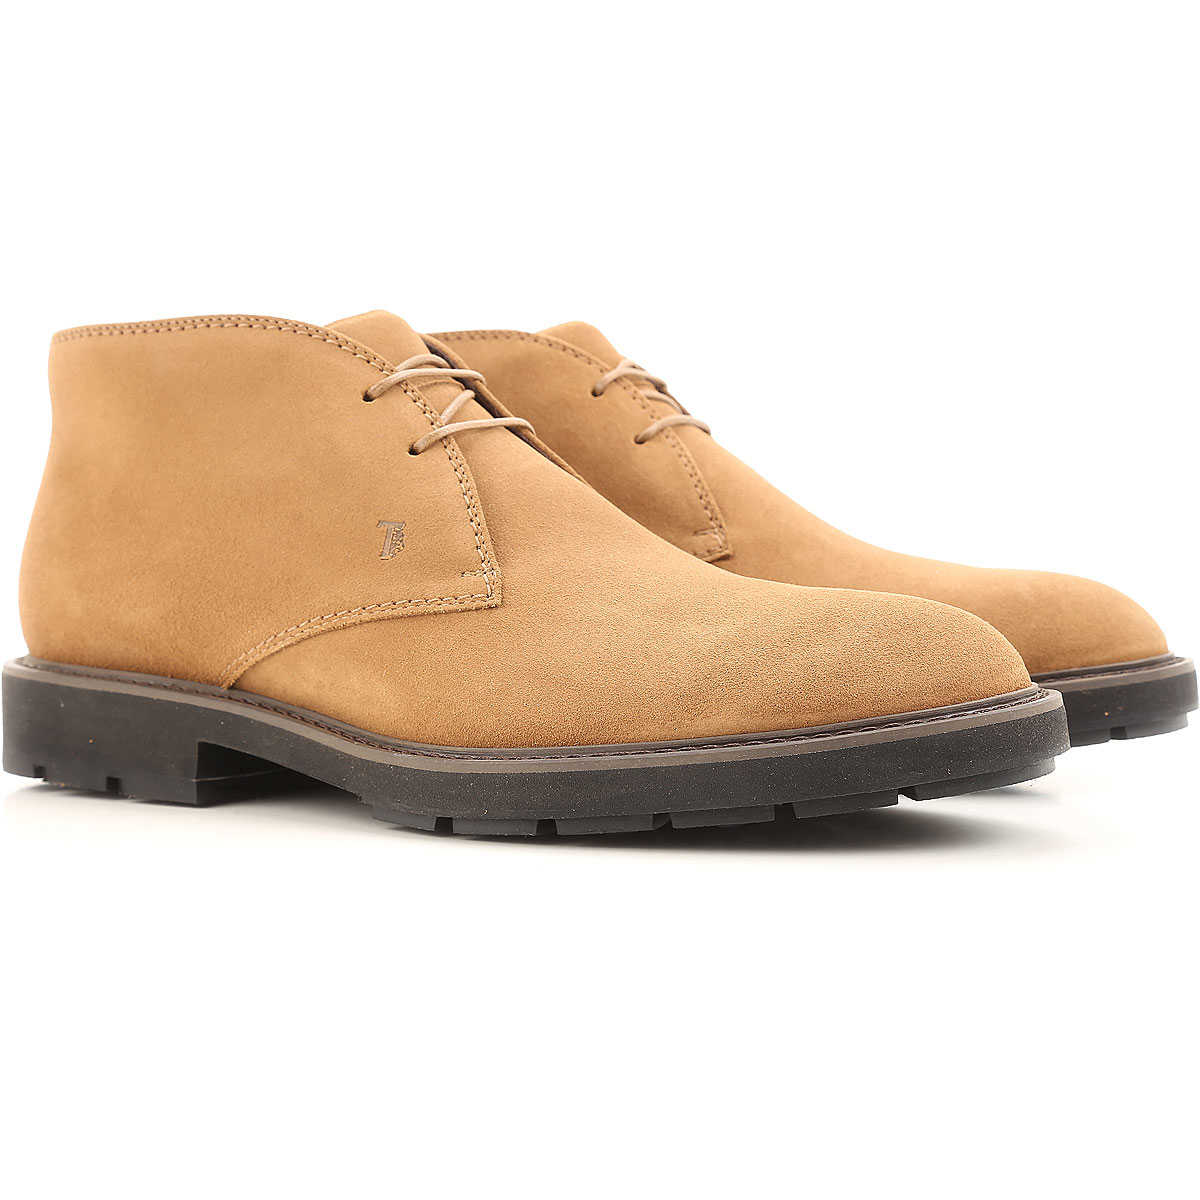 Tods Desert Boots Chukka for Men Biscuit USA - GOOFASH